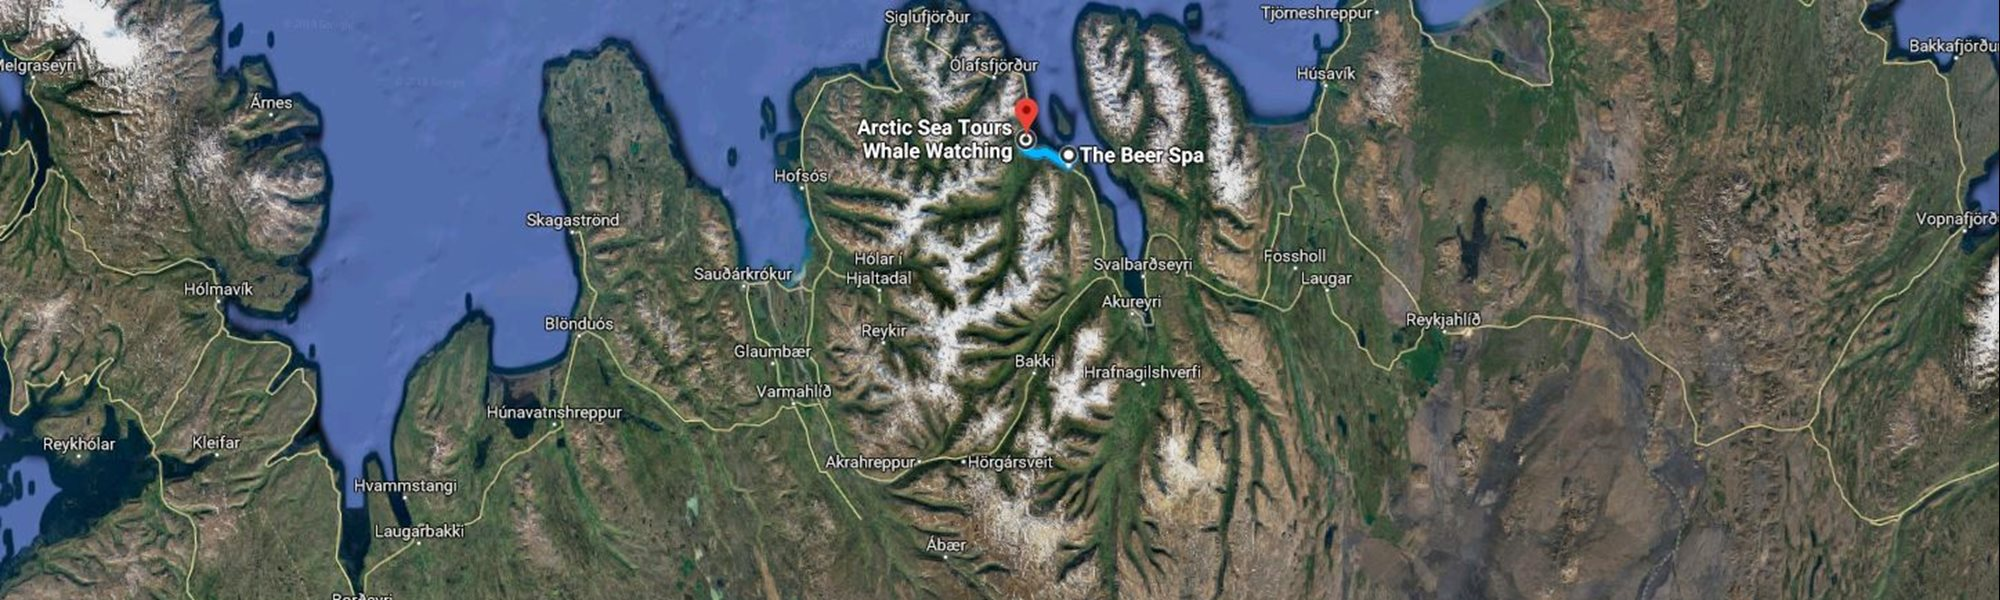 North Iceland map for beer spa and whale watching dalvik